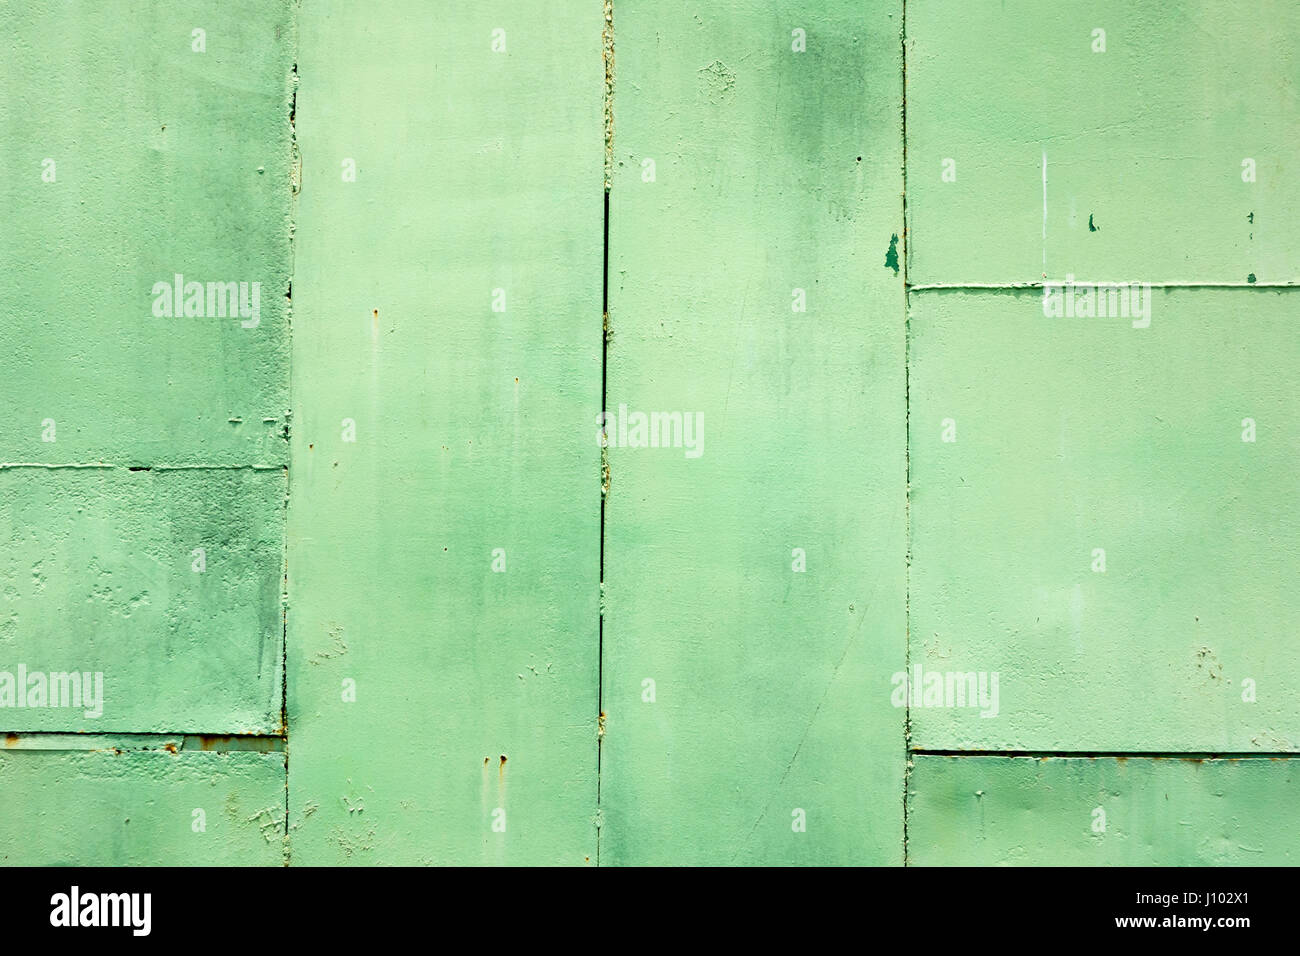 Grunge Concrete Sheet Wall Paint In Green Colour BackgroundTexture